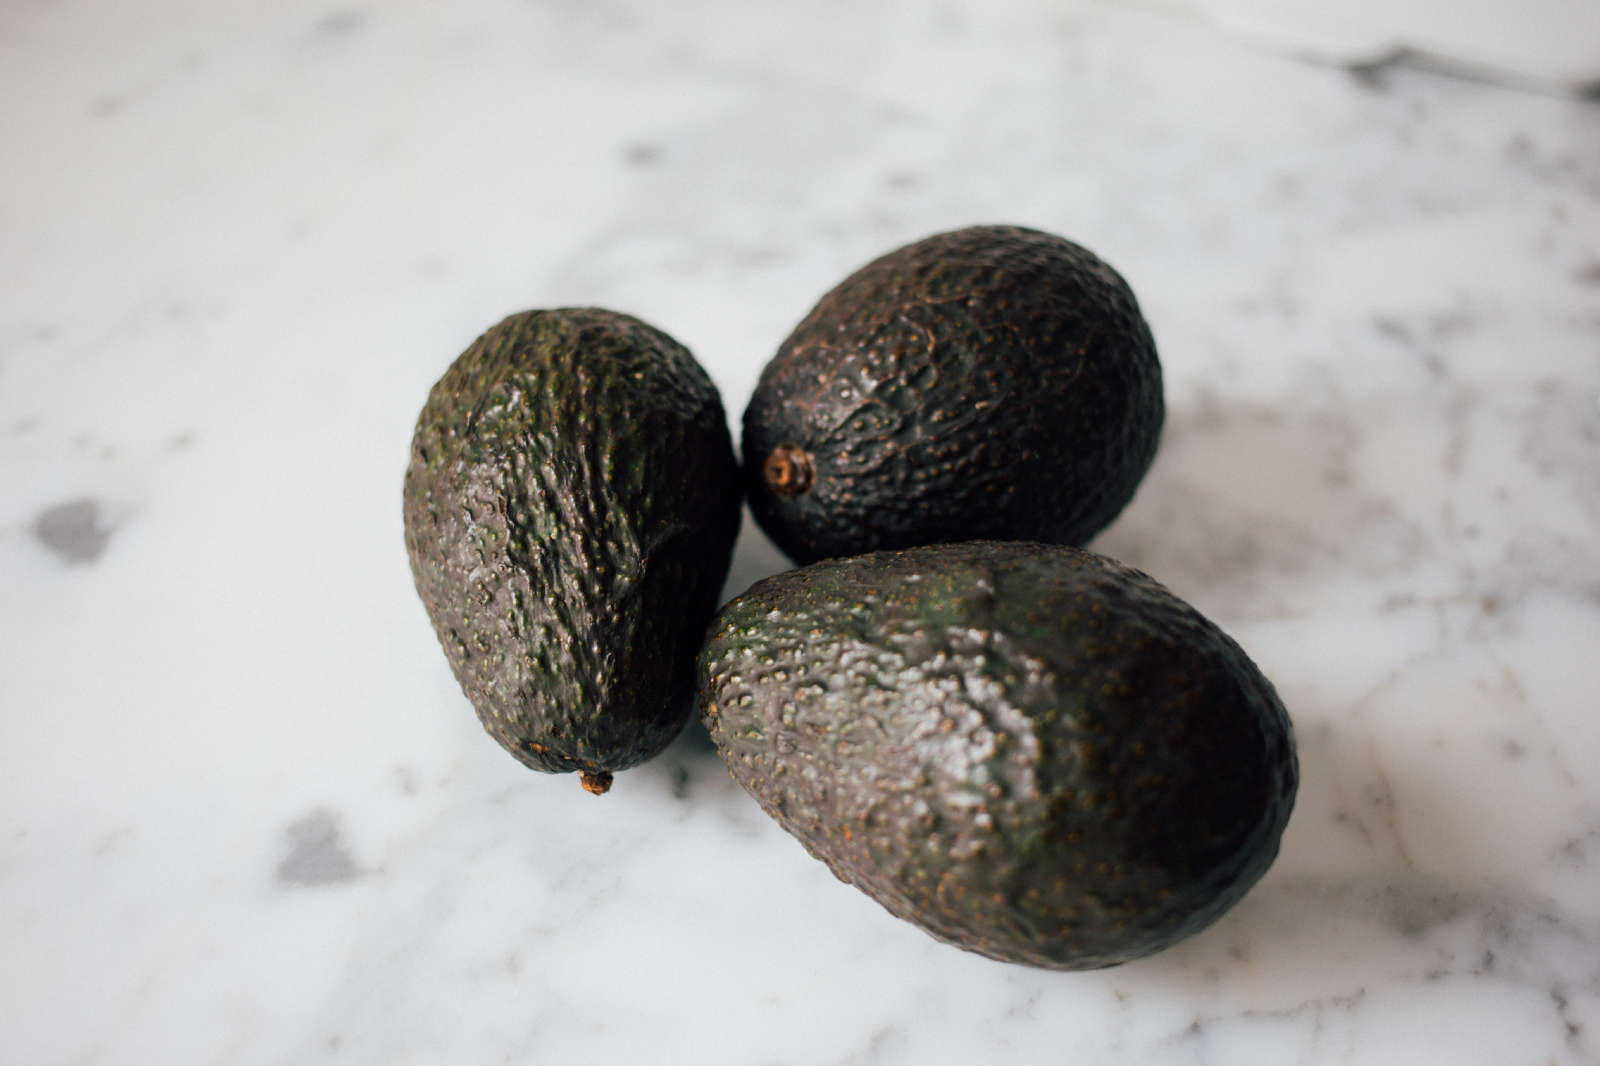 Avocados Declassified Kelvin Goodman Medium Avocadoseeddiagram1 After Completing Andrew Ngs 11 Week Machine Learning Course I Began Applying What Learned Toyou Guessed It